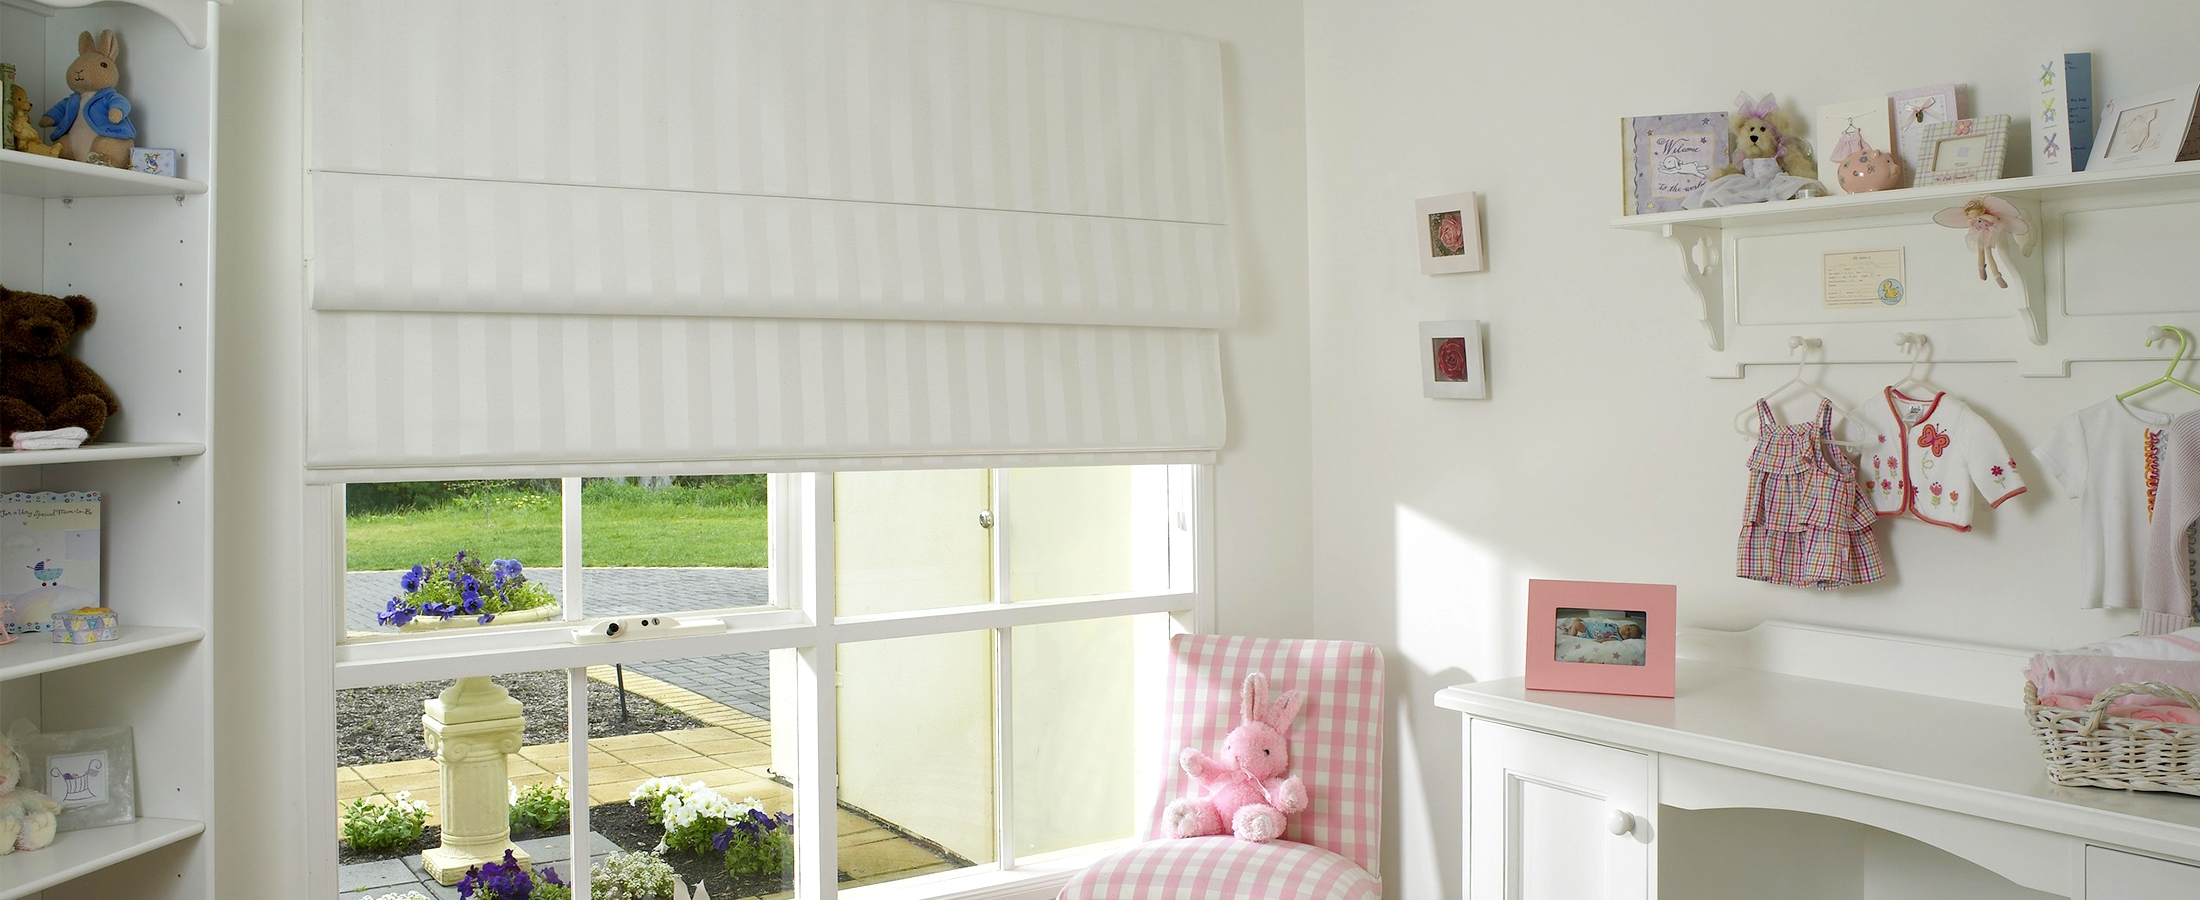 Superior Roman Blinds Perth Abc Blinds Biggest Best In Striped Roman Blinds (Image 14 of 15)